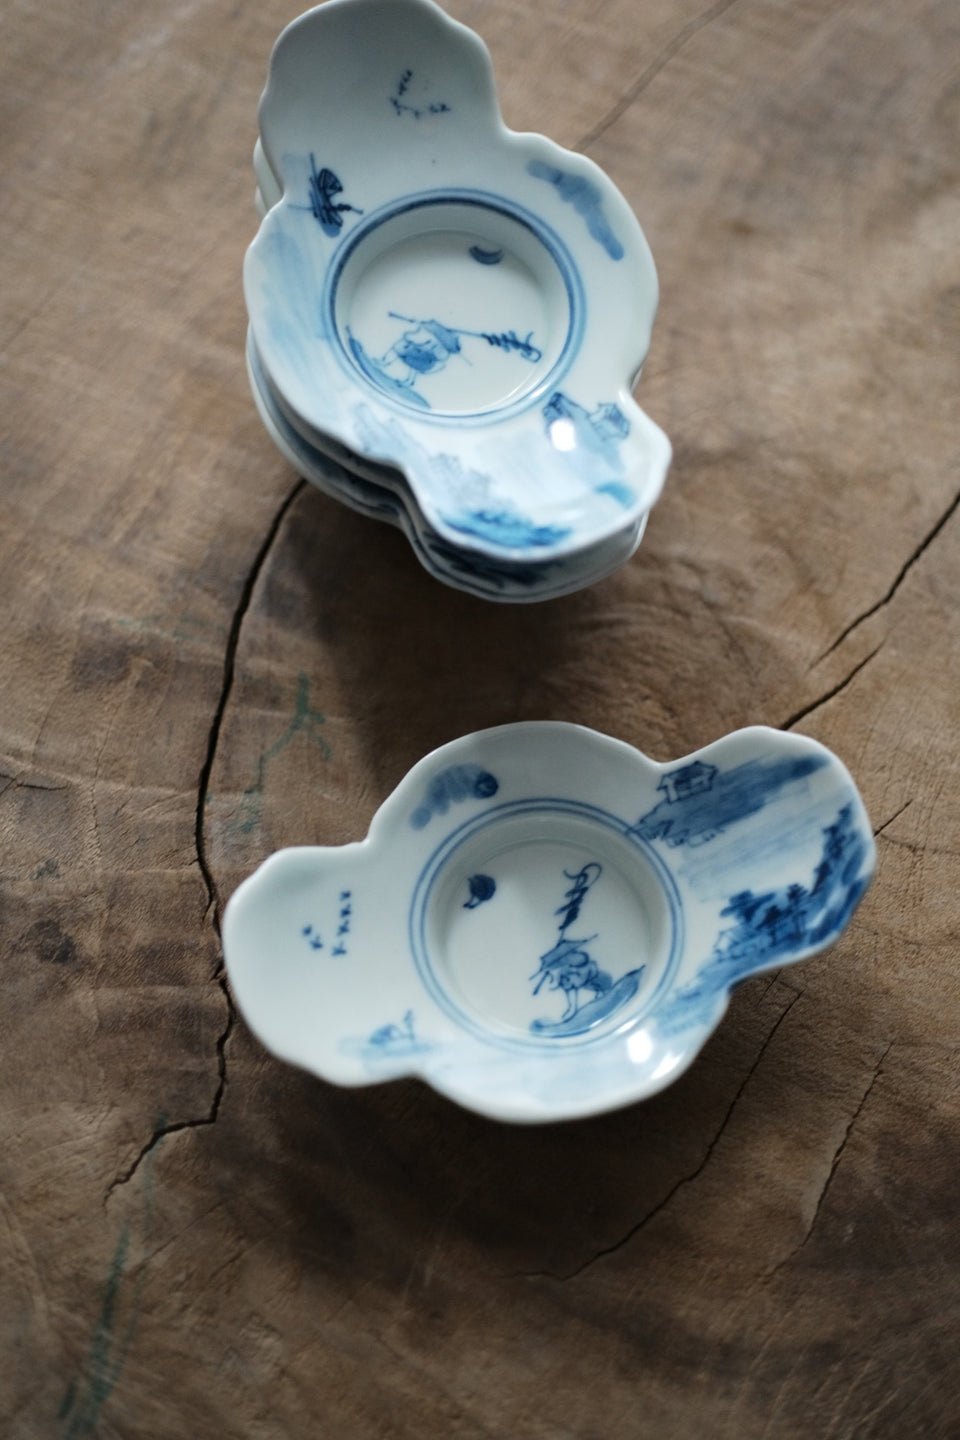 Fishing Man Qinghua Hand-made & Painted Teacup Saucers